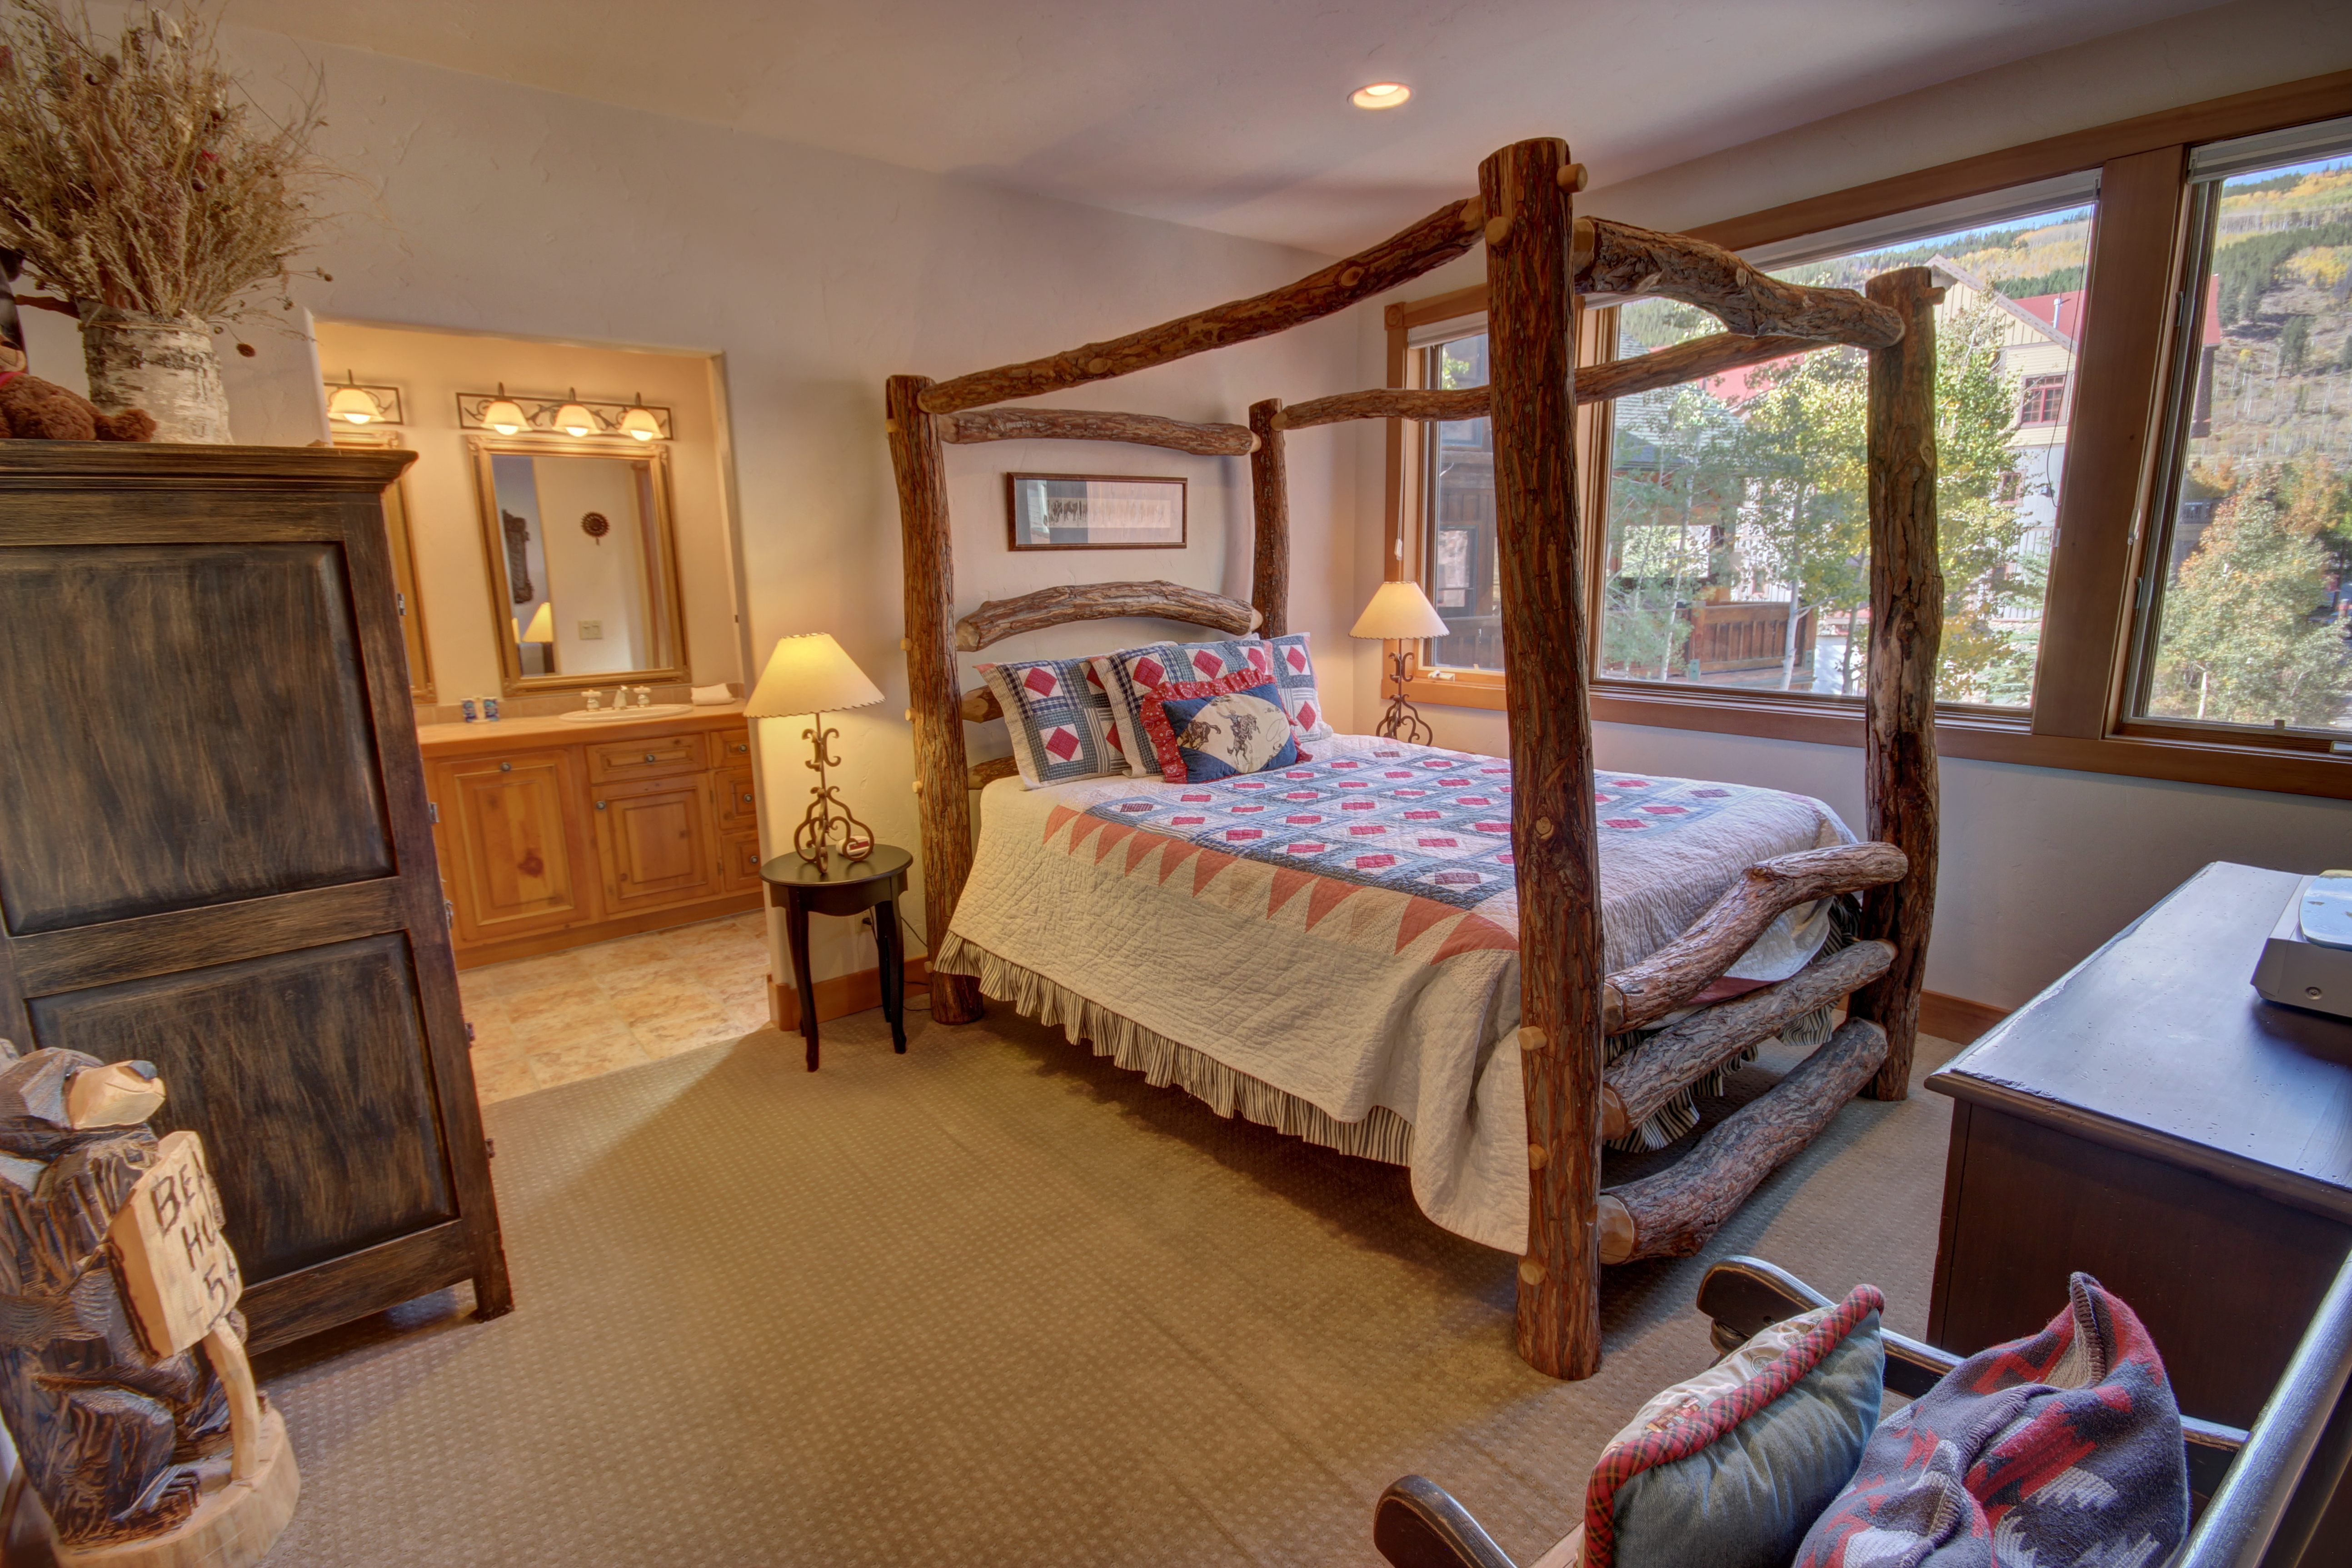 Bedroom with a 4- post canopy bed frame